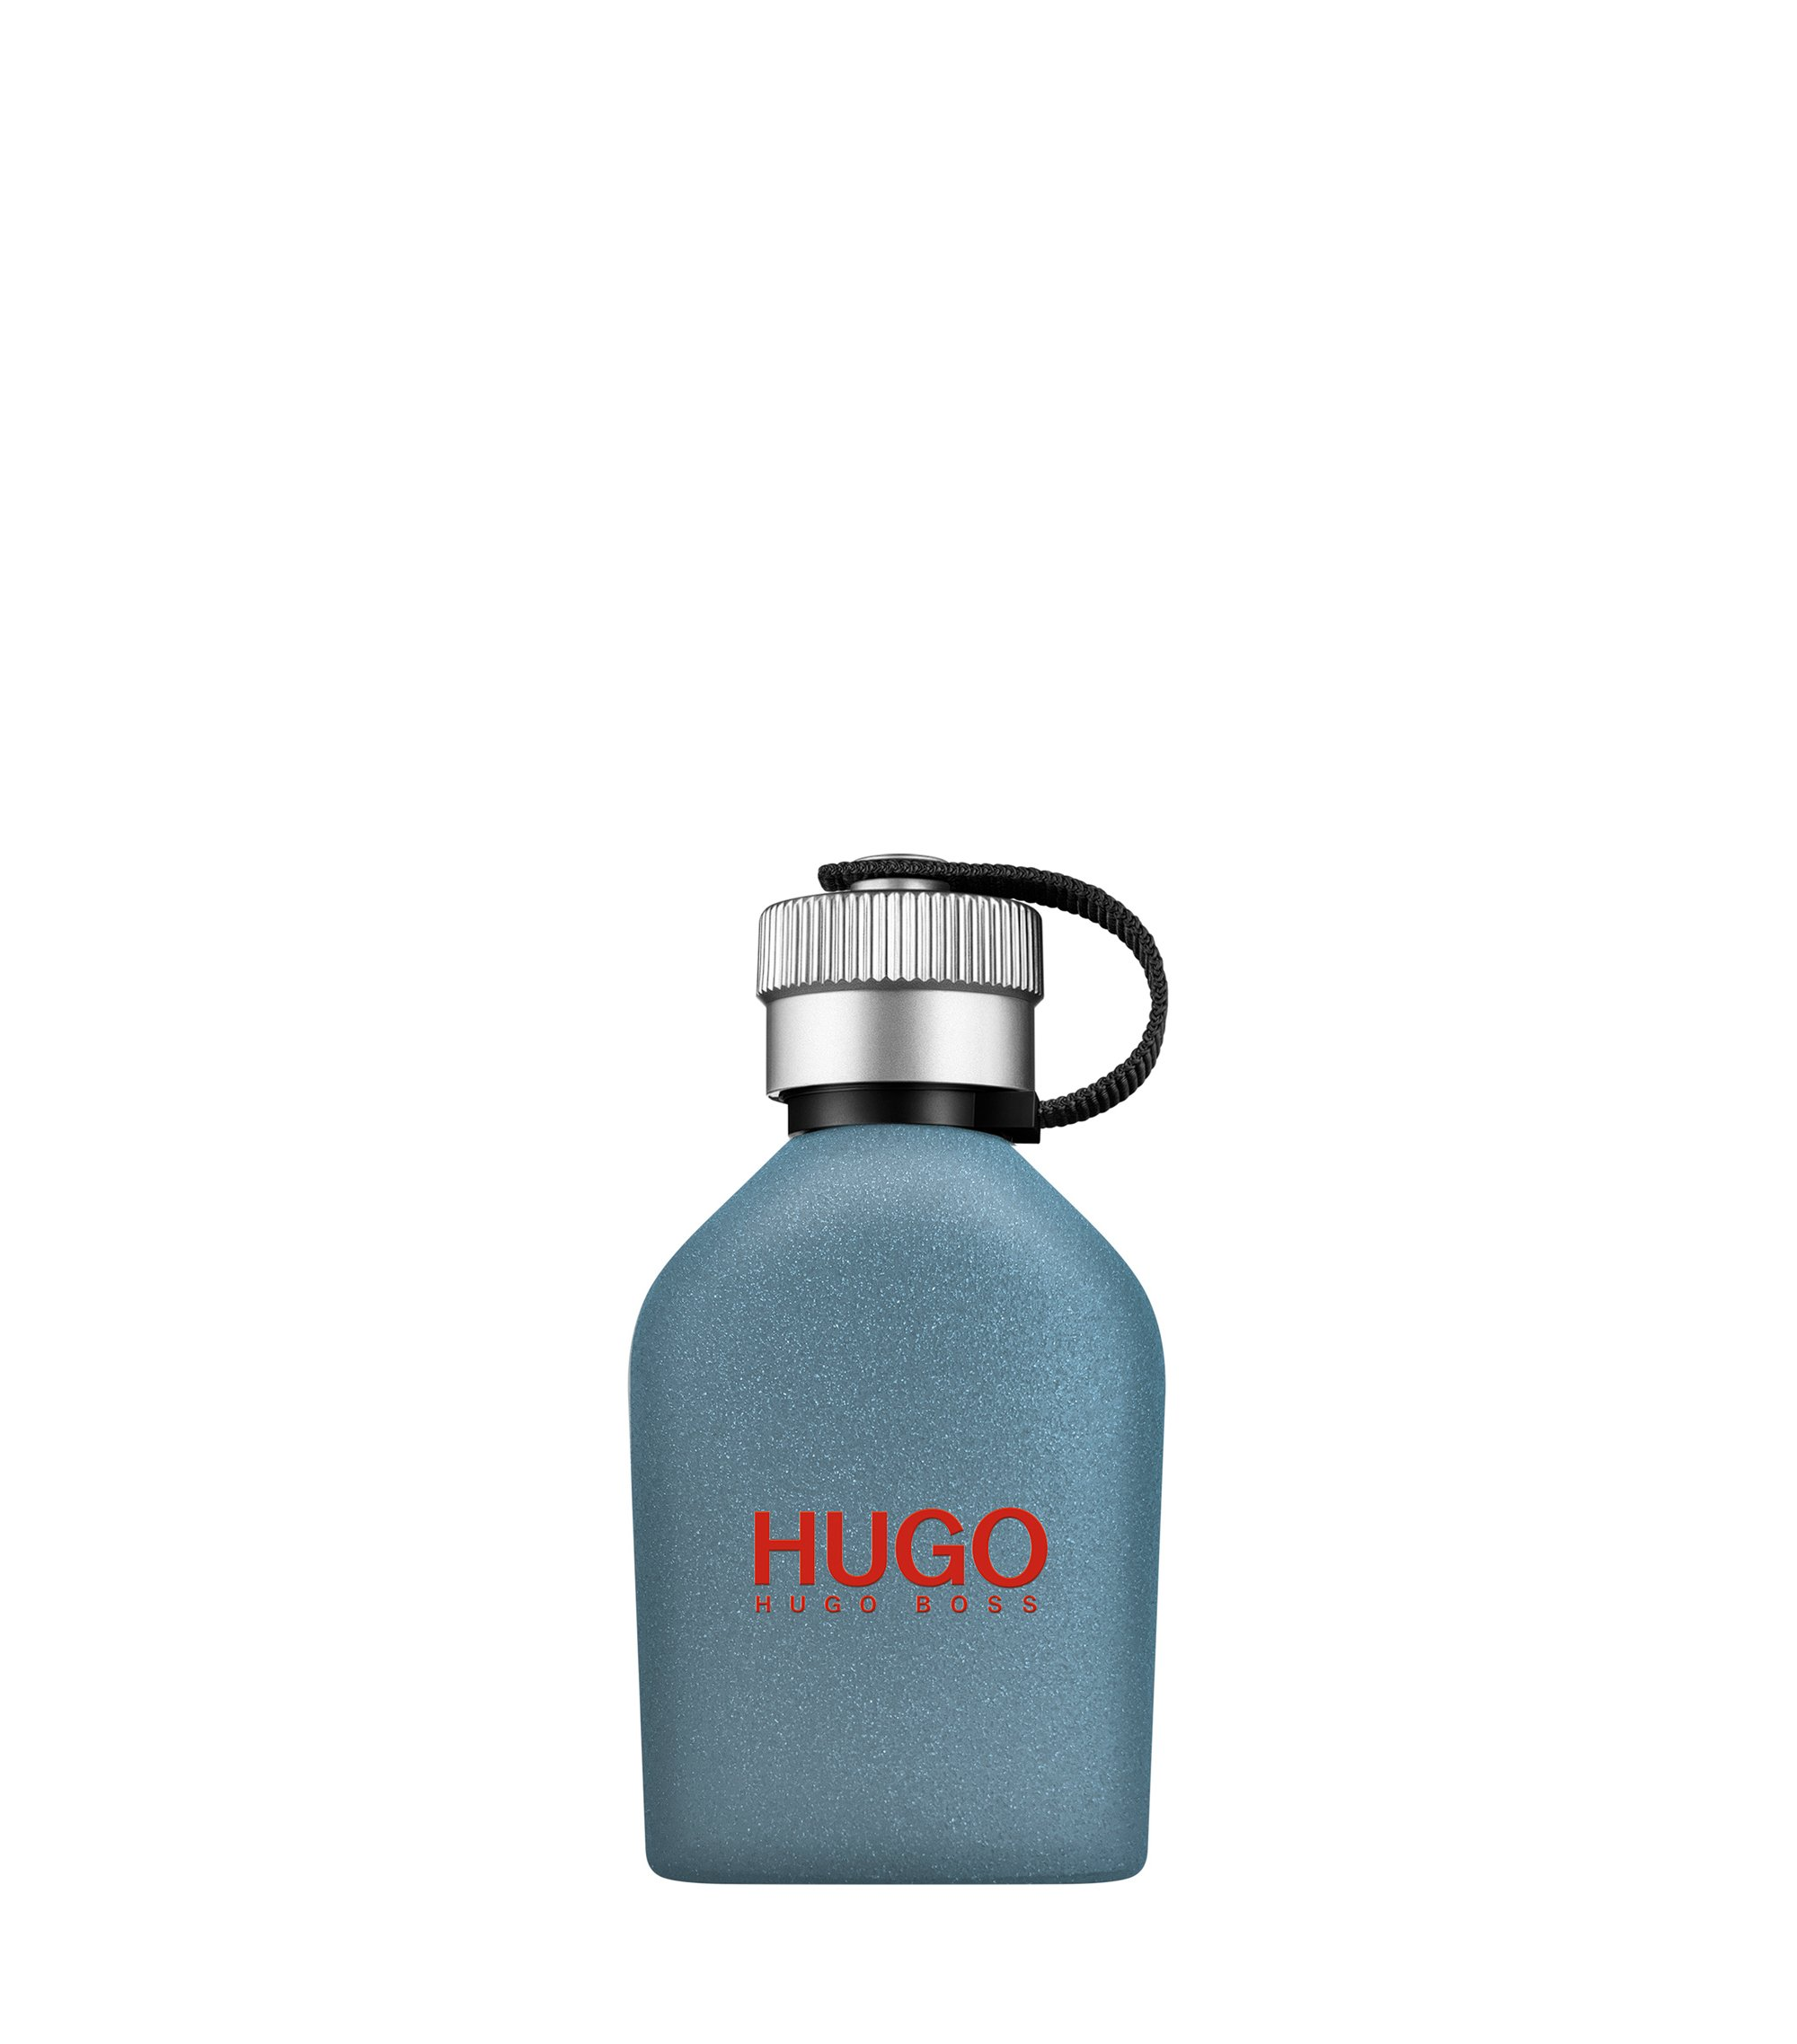 HUGO Urban Journey eau de toilette da 75 ml, Assorted-Pre-Pack